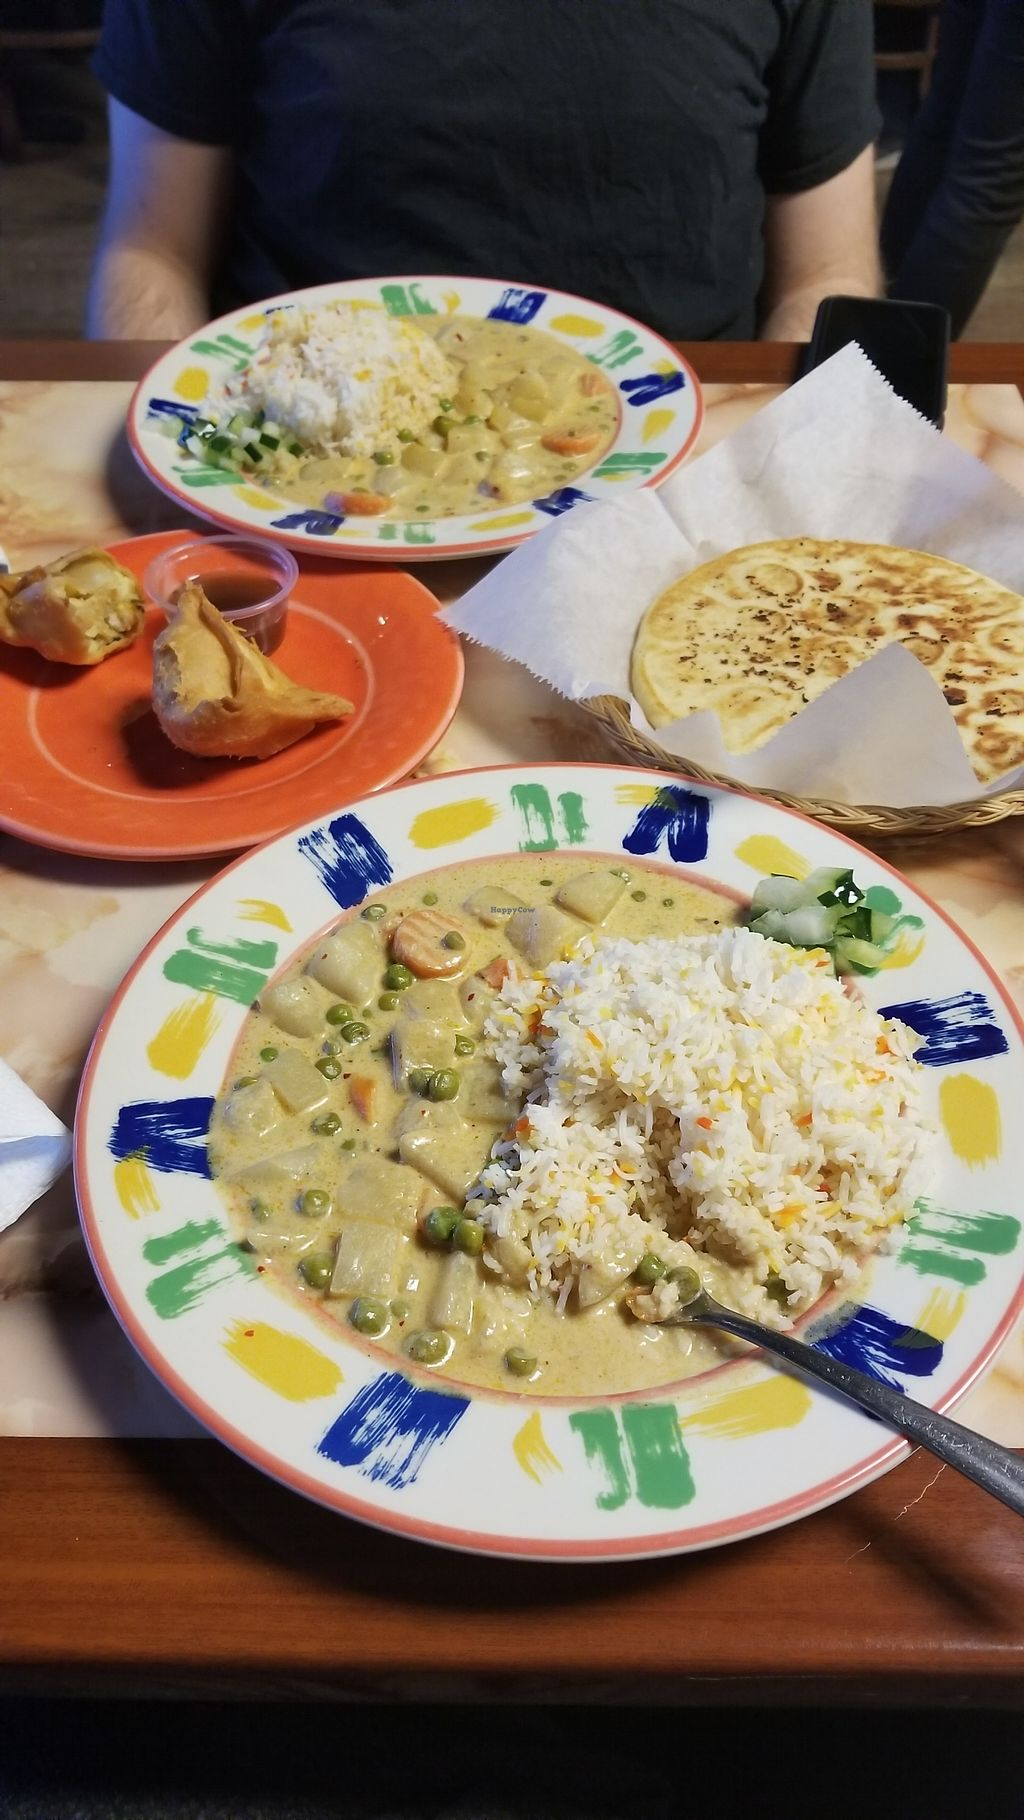 "Photo of Bombay Cafe  by <a href=""/members/profile/MykenBriggs"">MykenBriggs</a> <br/>Veggie coconut curry, samosas and flatbread (without butter)  <br/> February 17, 2018  - <a href='/contact/abuse/image/85727/360551'>Report</a>"